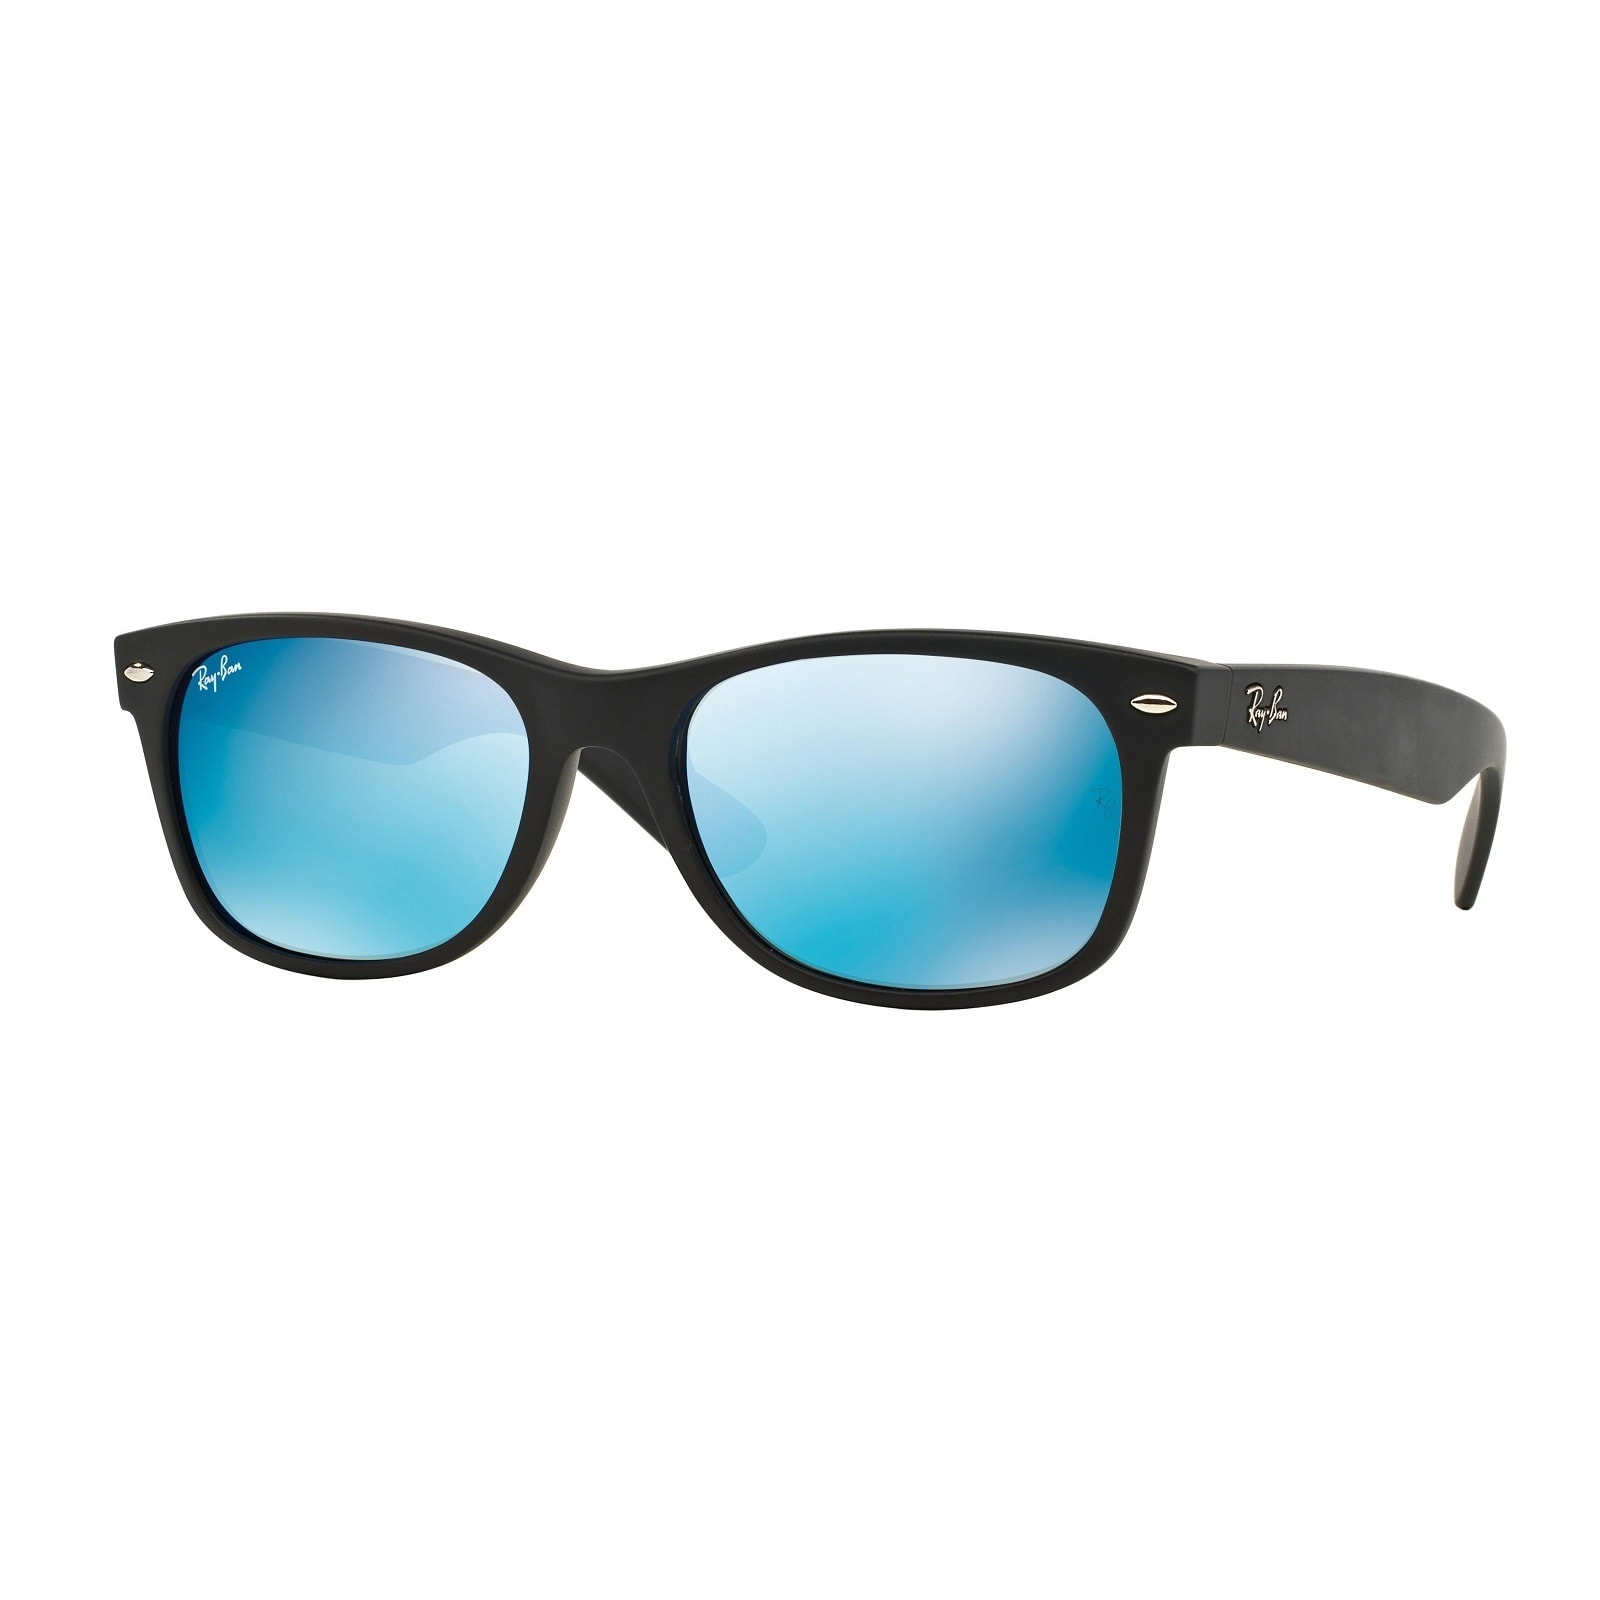 84d99b1525 Shop Ray-Ban RB2132 622 17 New Wayfarer Black Frame Blue Flash 52mm Lens  Sunglasses - Free Shipping Today - Overstock - 14204728